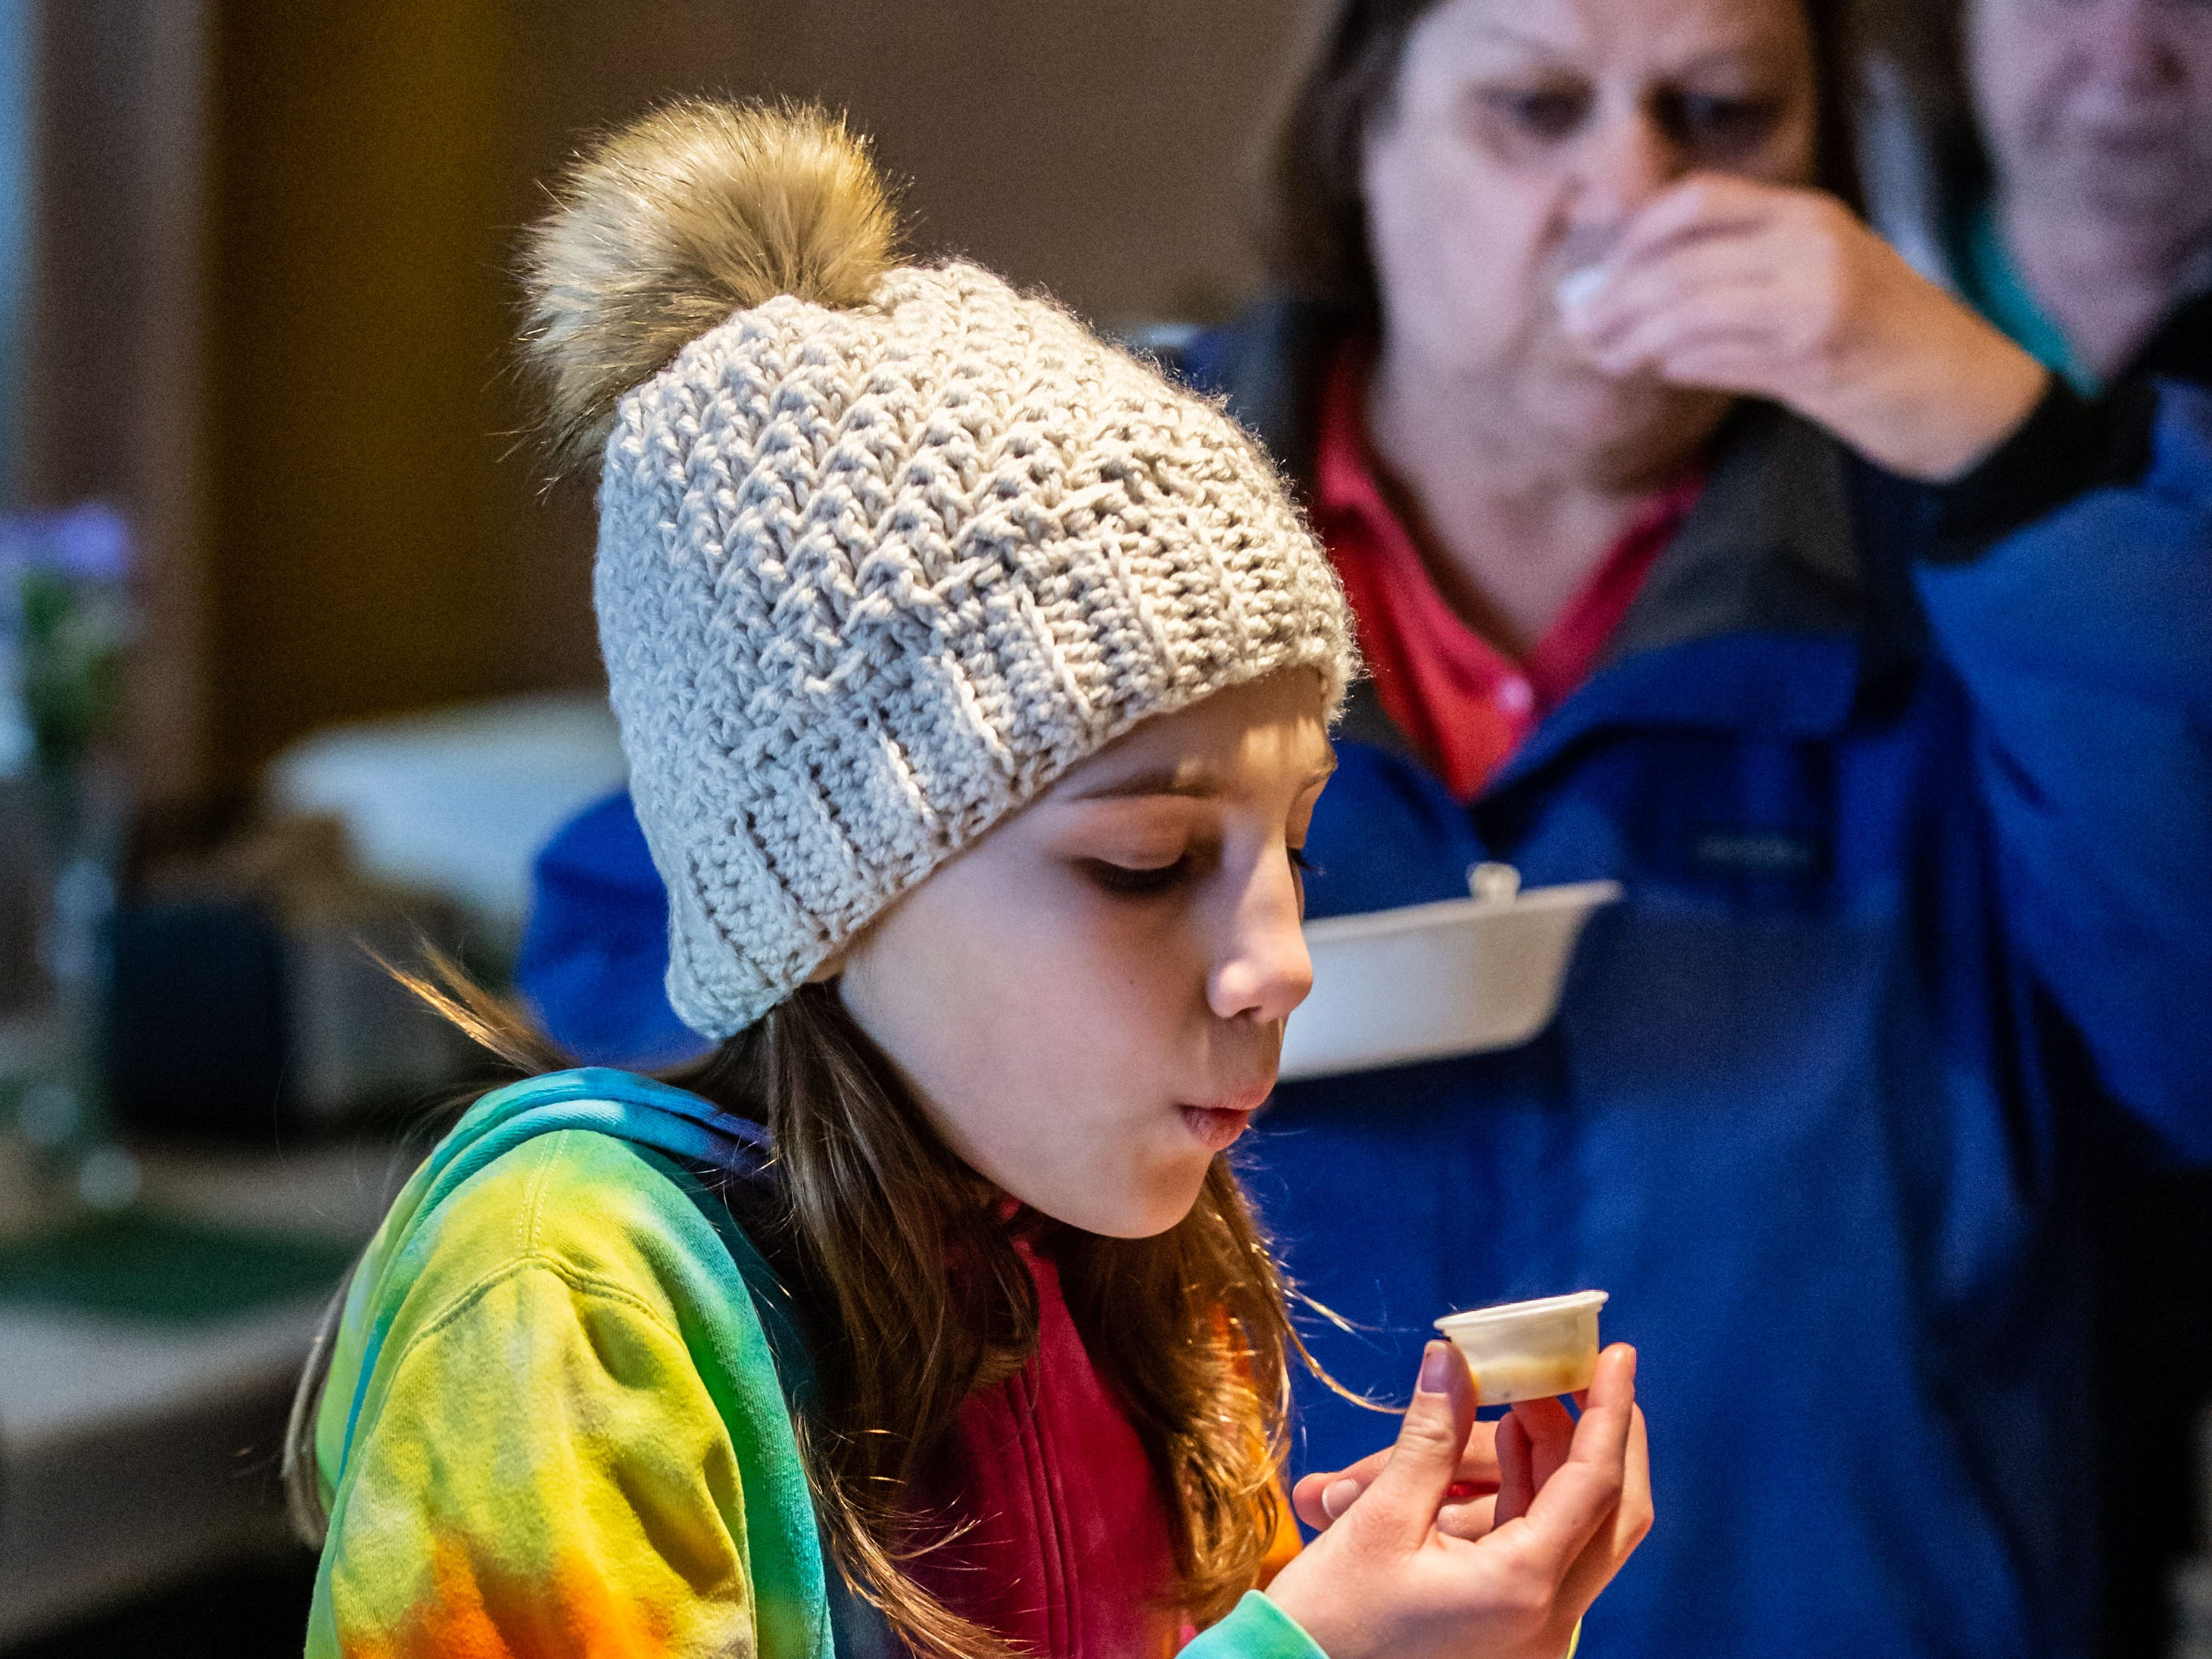 Elena May, 11, of West Allis tries a free sample of soup during the 8th annual Empty Bowls event at the LaFollette Park Pavilion in West Allis on Saturday, March 2, 2019. The goal of the event, hosted by the Friends of LaFollette Park, is to collect food and raise funds for West Allis food pantries. Local restaurants, including Senor Sol, Urban Joe Cafe, Filippo's Italian Restaurant, Pallas Restaurant, and West Allis Cheese and Sausage Shop donate the delicious soups offered at the event.